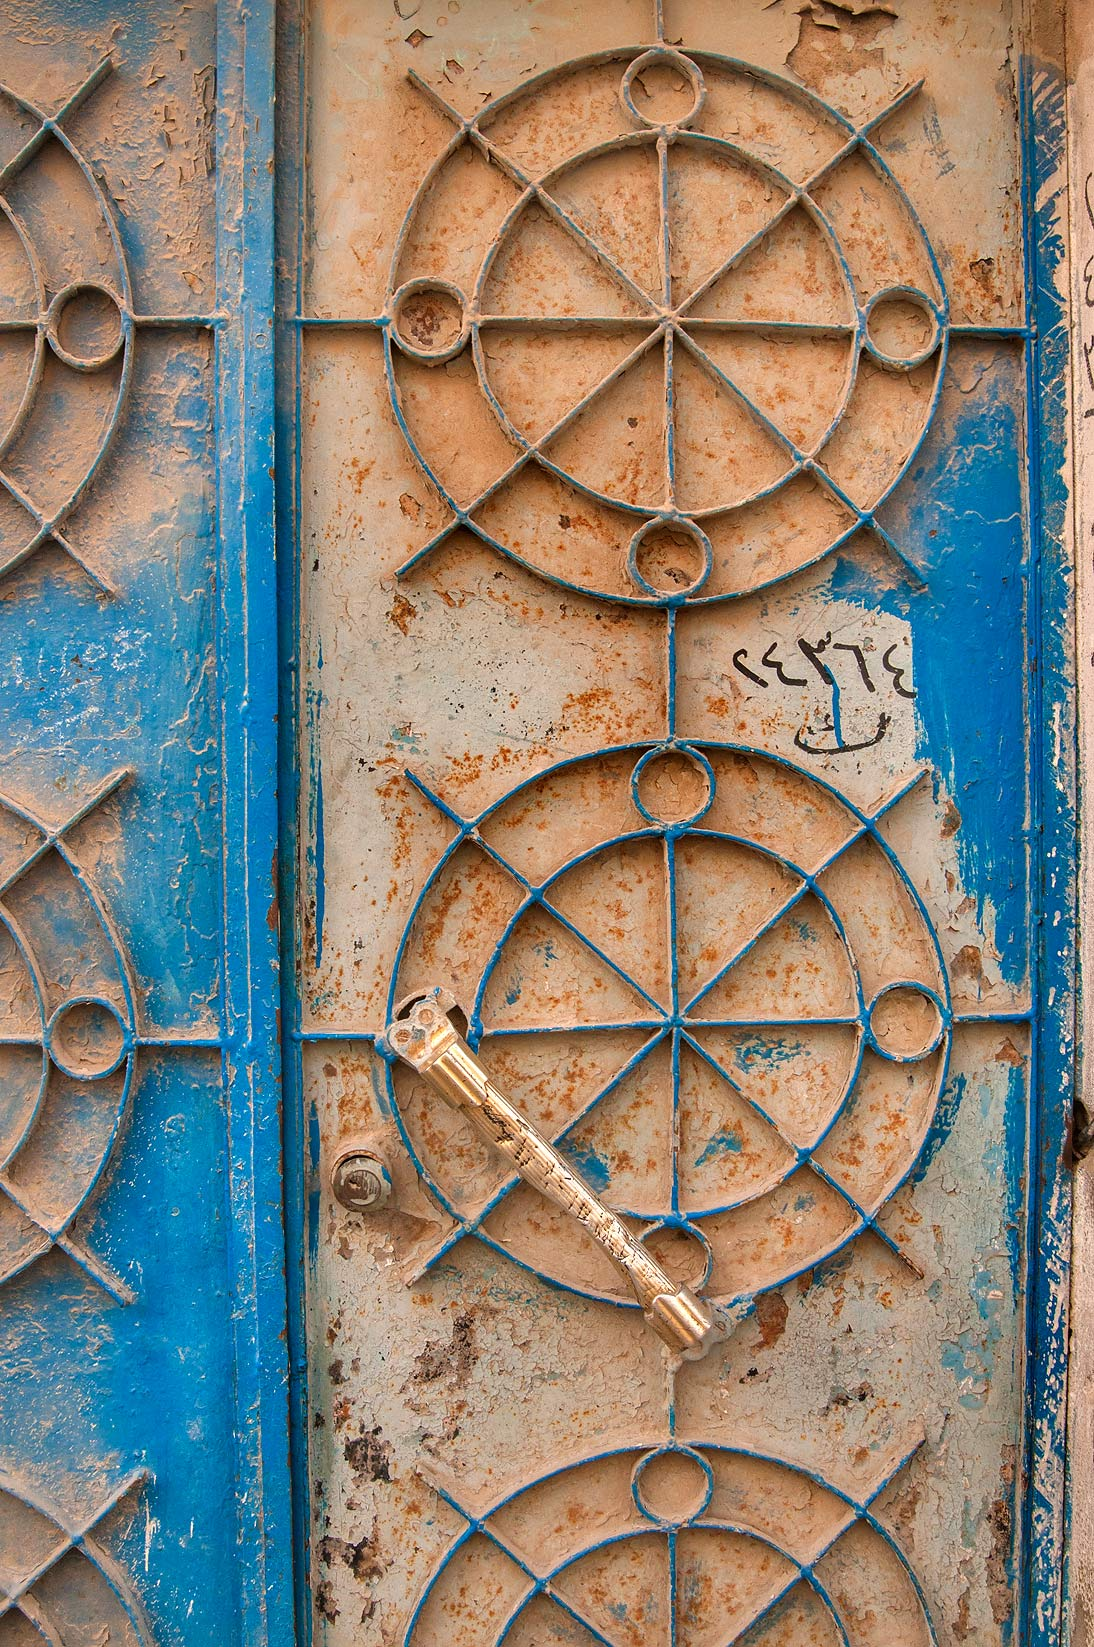 Iron door decorated by concentric circles at...Mansoura St., Najma area. Doha, Qatar